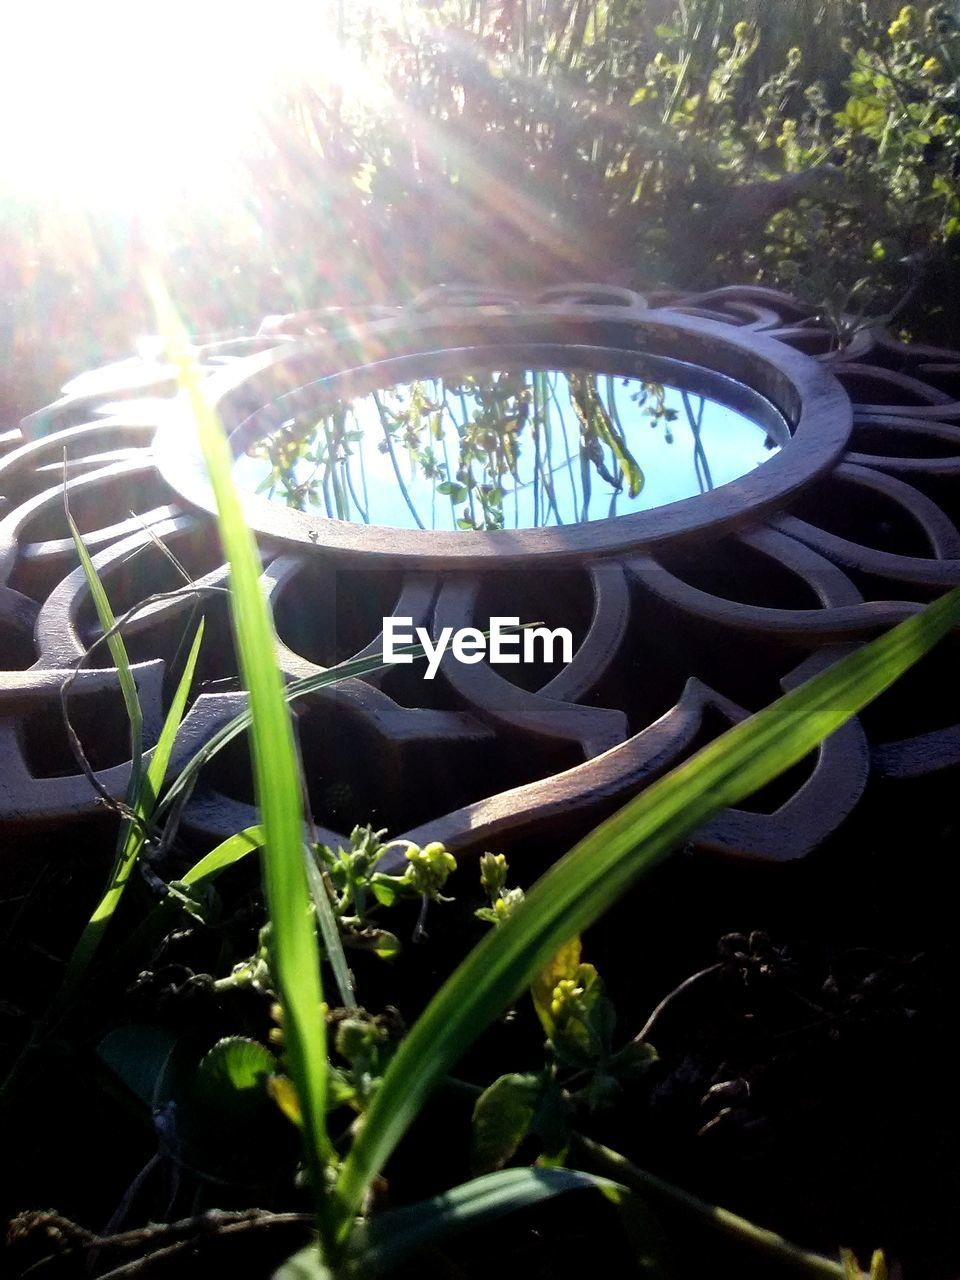 plant, growth, nature, day, sunlight, close-up, no people, selective focus, outdoors, beauty in nature, grass, land, green color, tree, plant part, leaf, sky, flower, fragility, lens flare, blade of grass